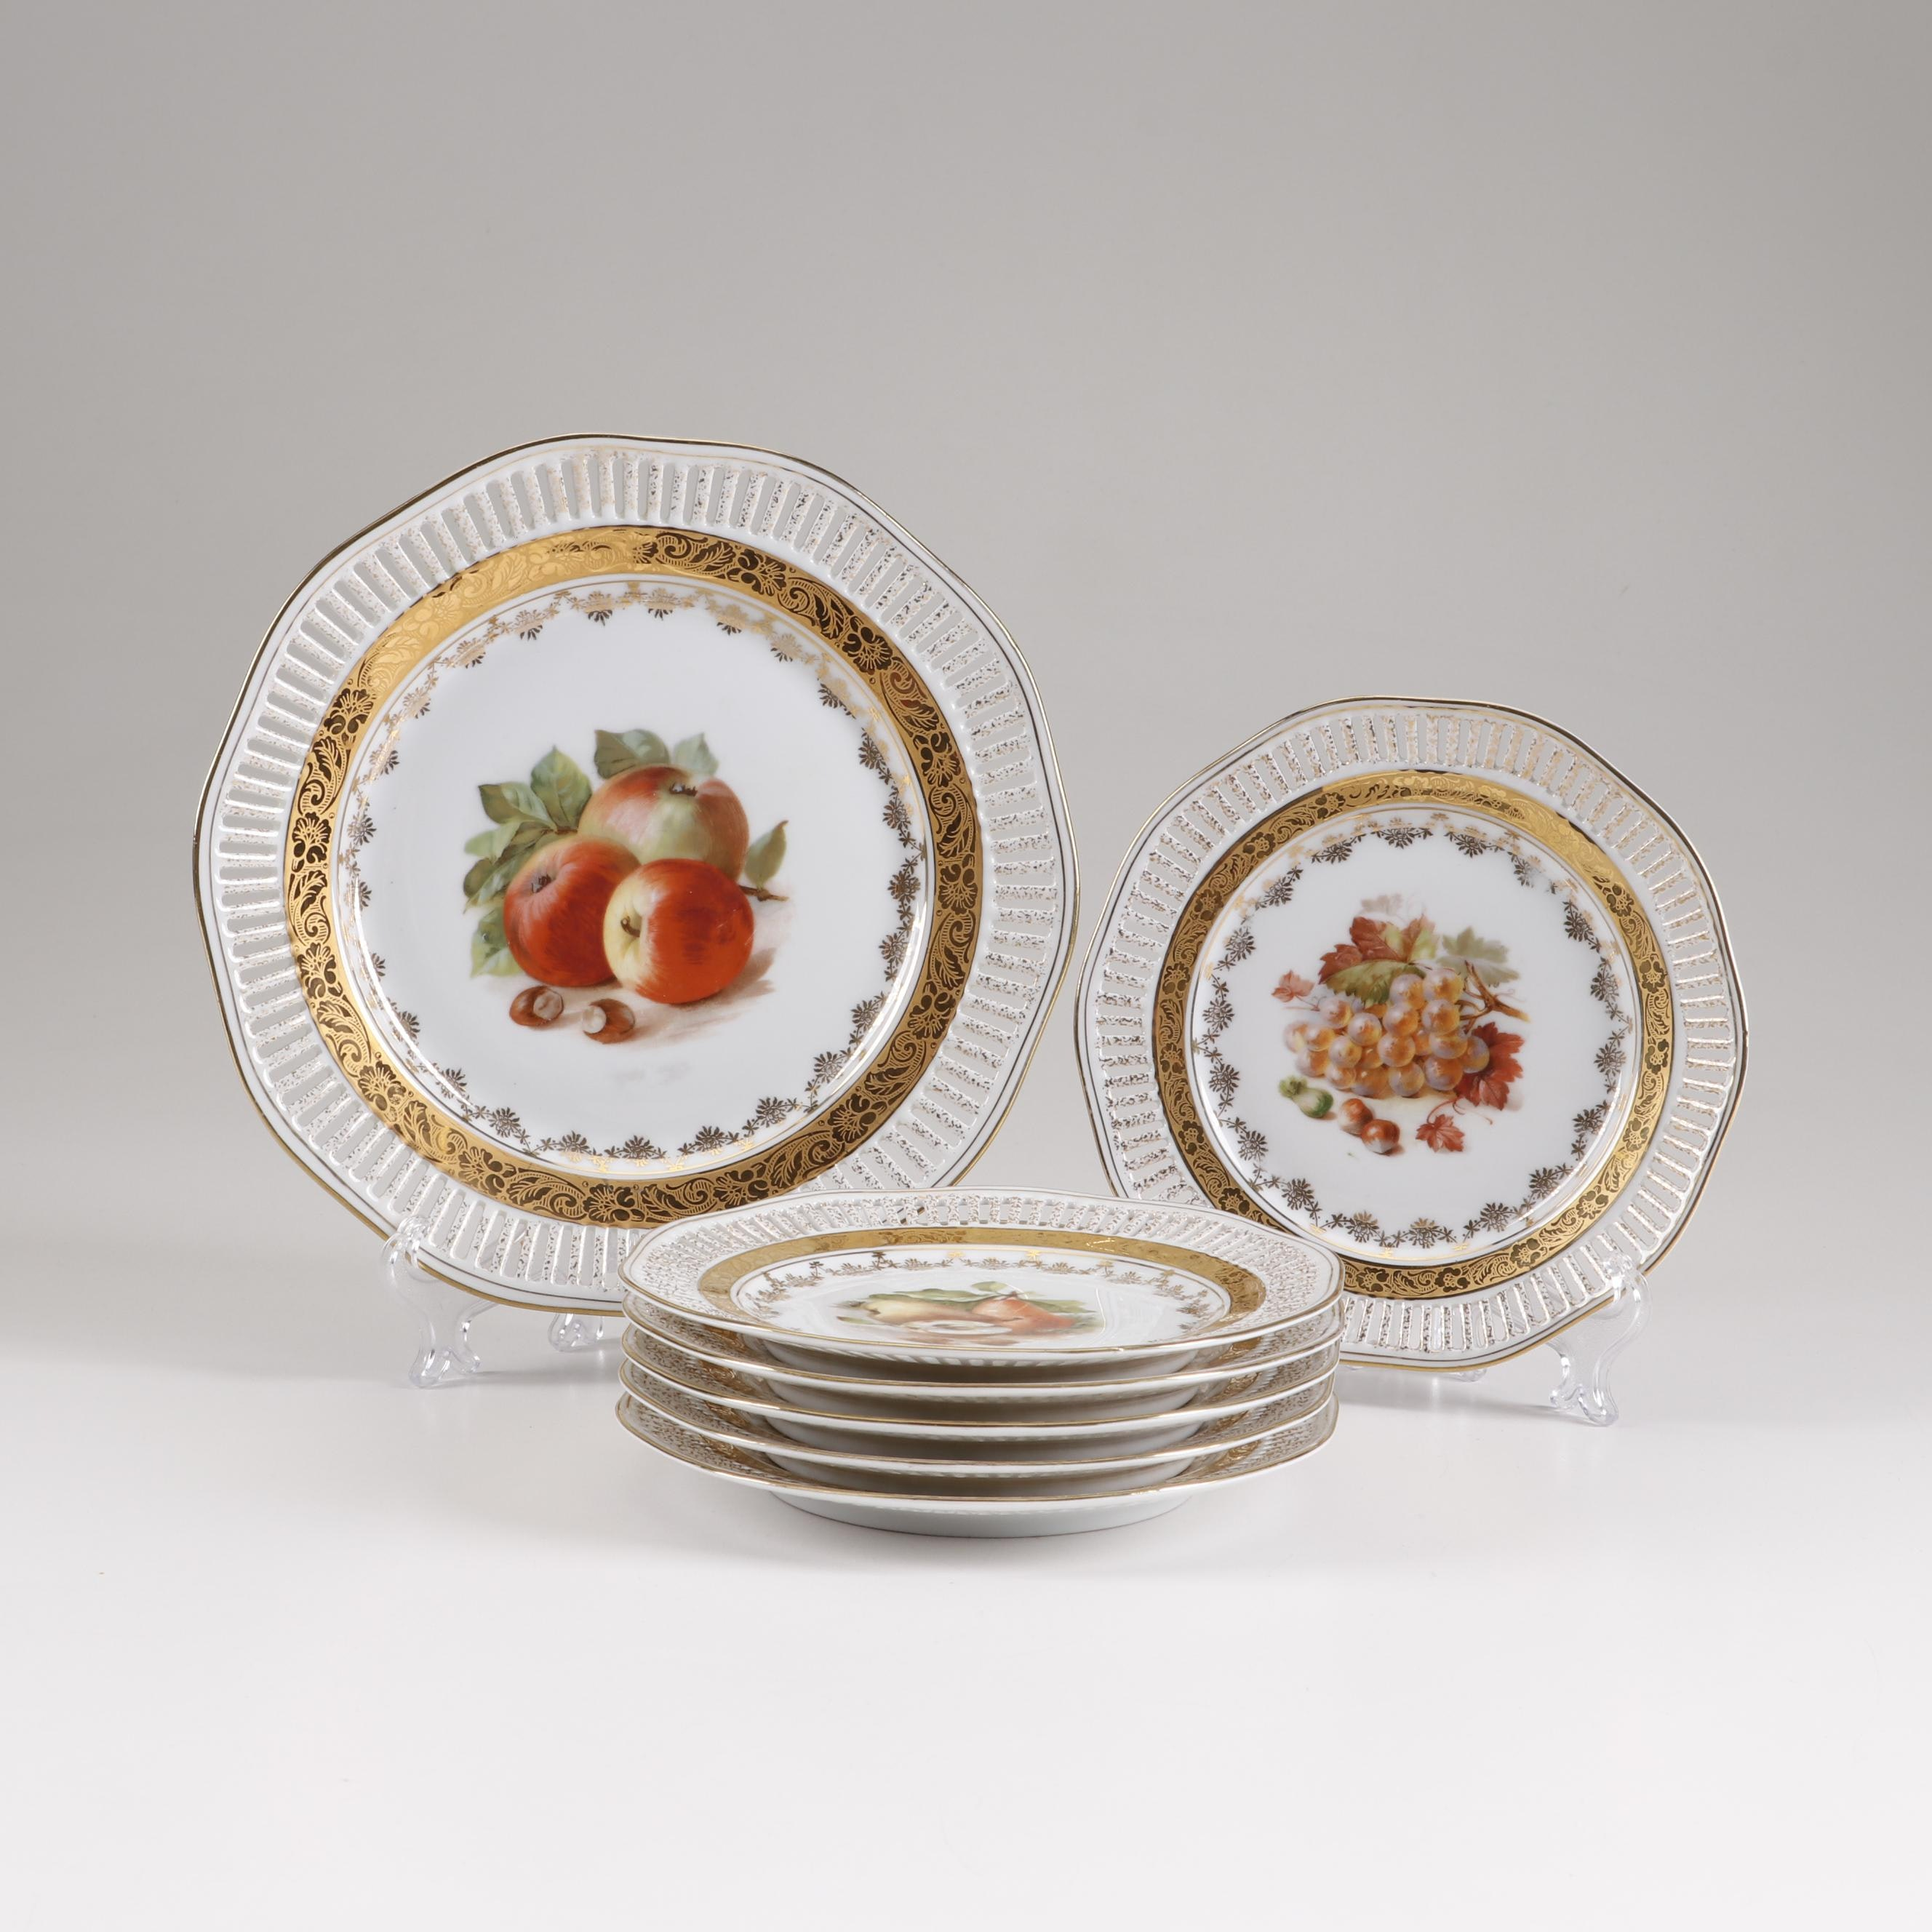 Bavarian Winterling Reticulated Porcelain Plates